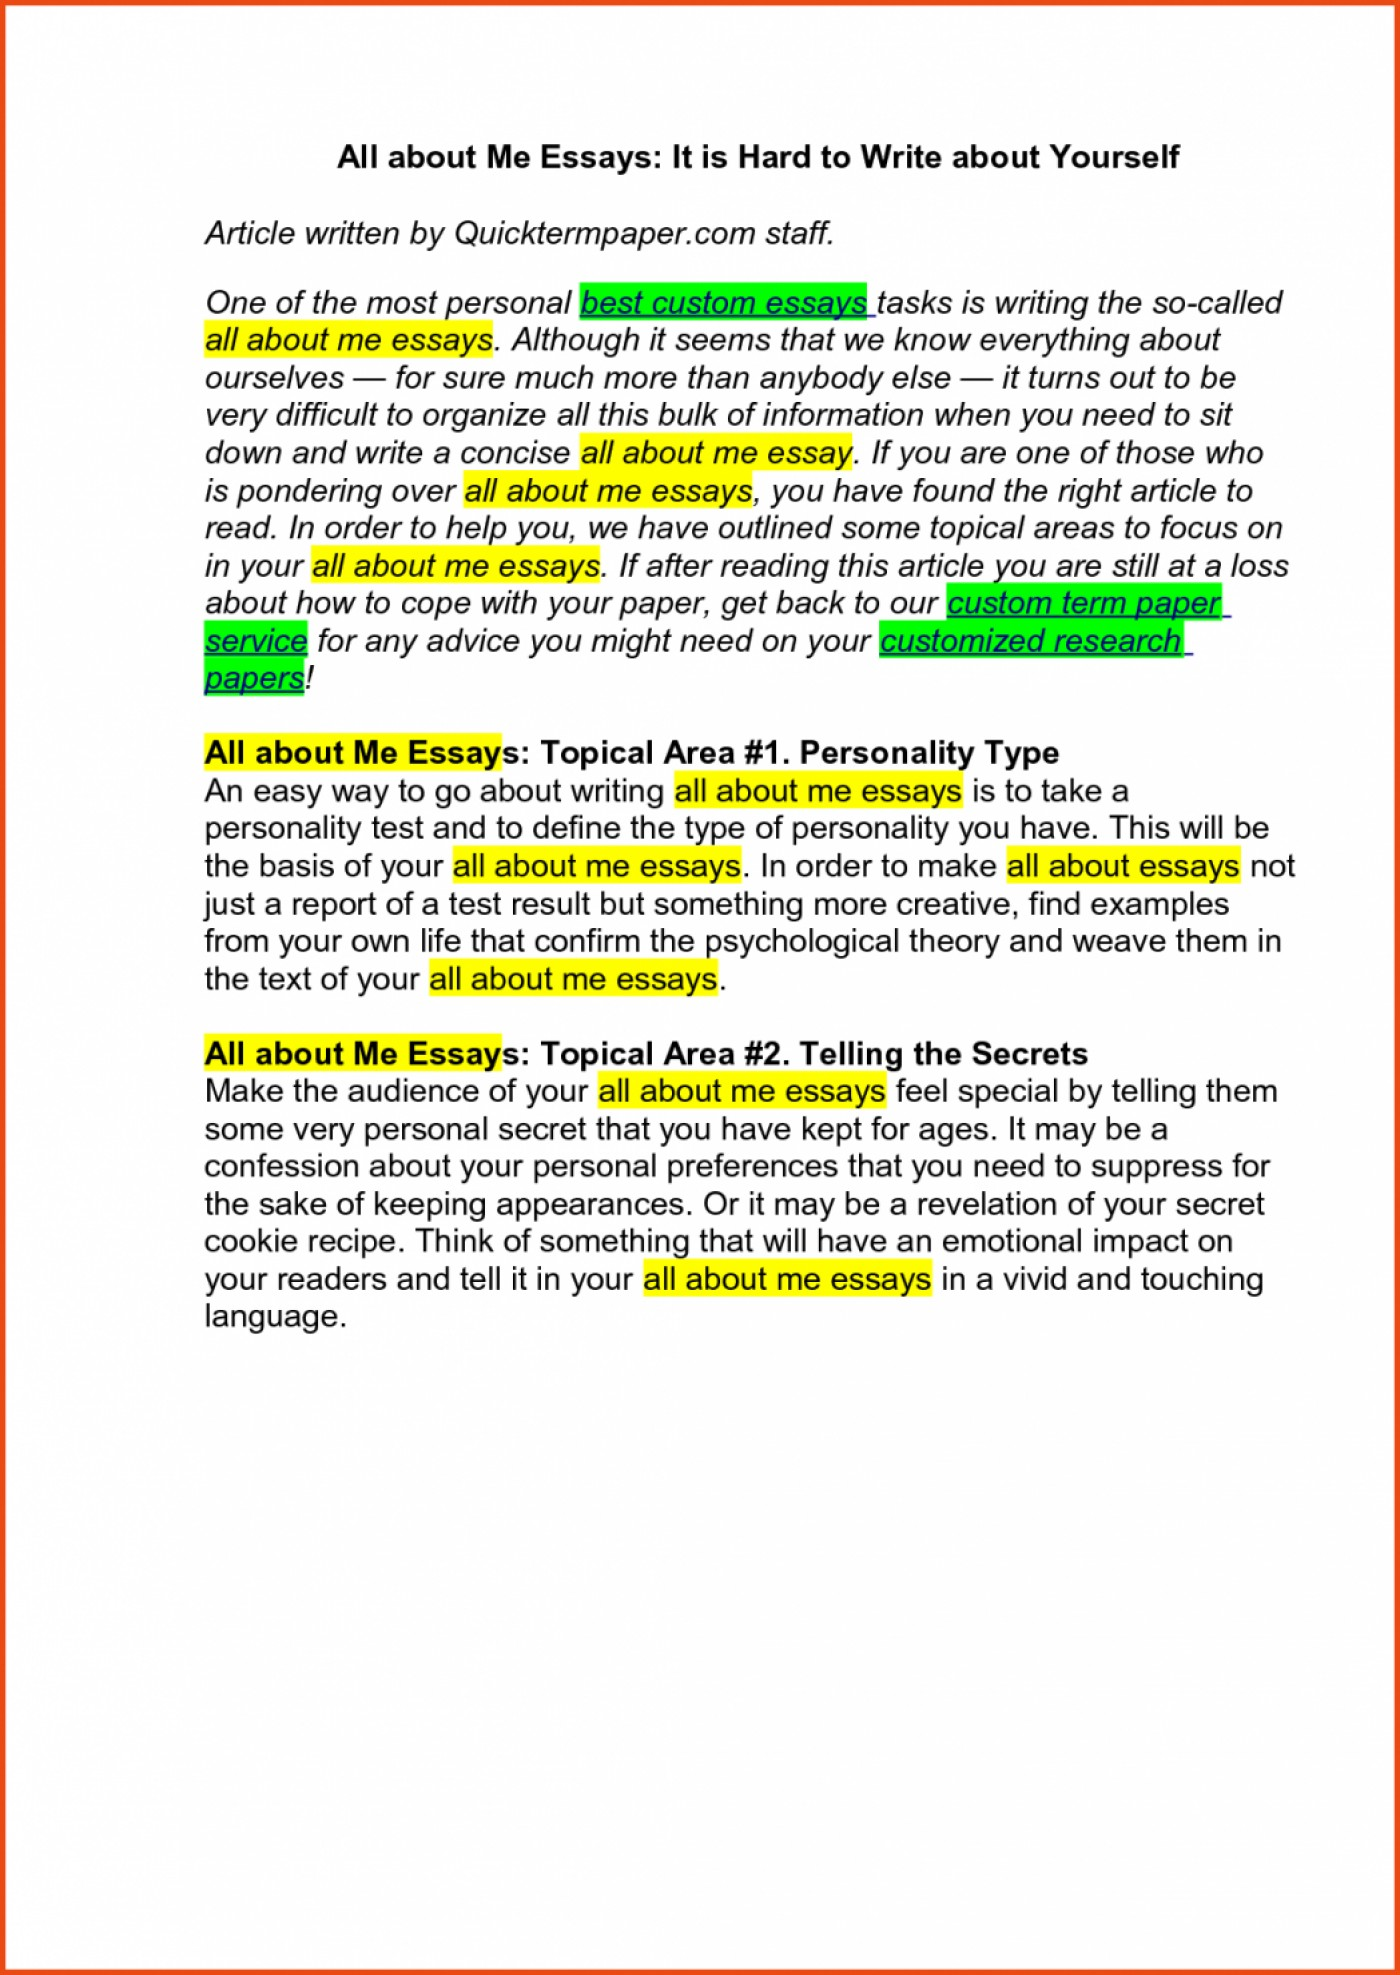 003 sample college essays about yourself essay example